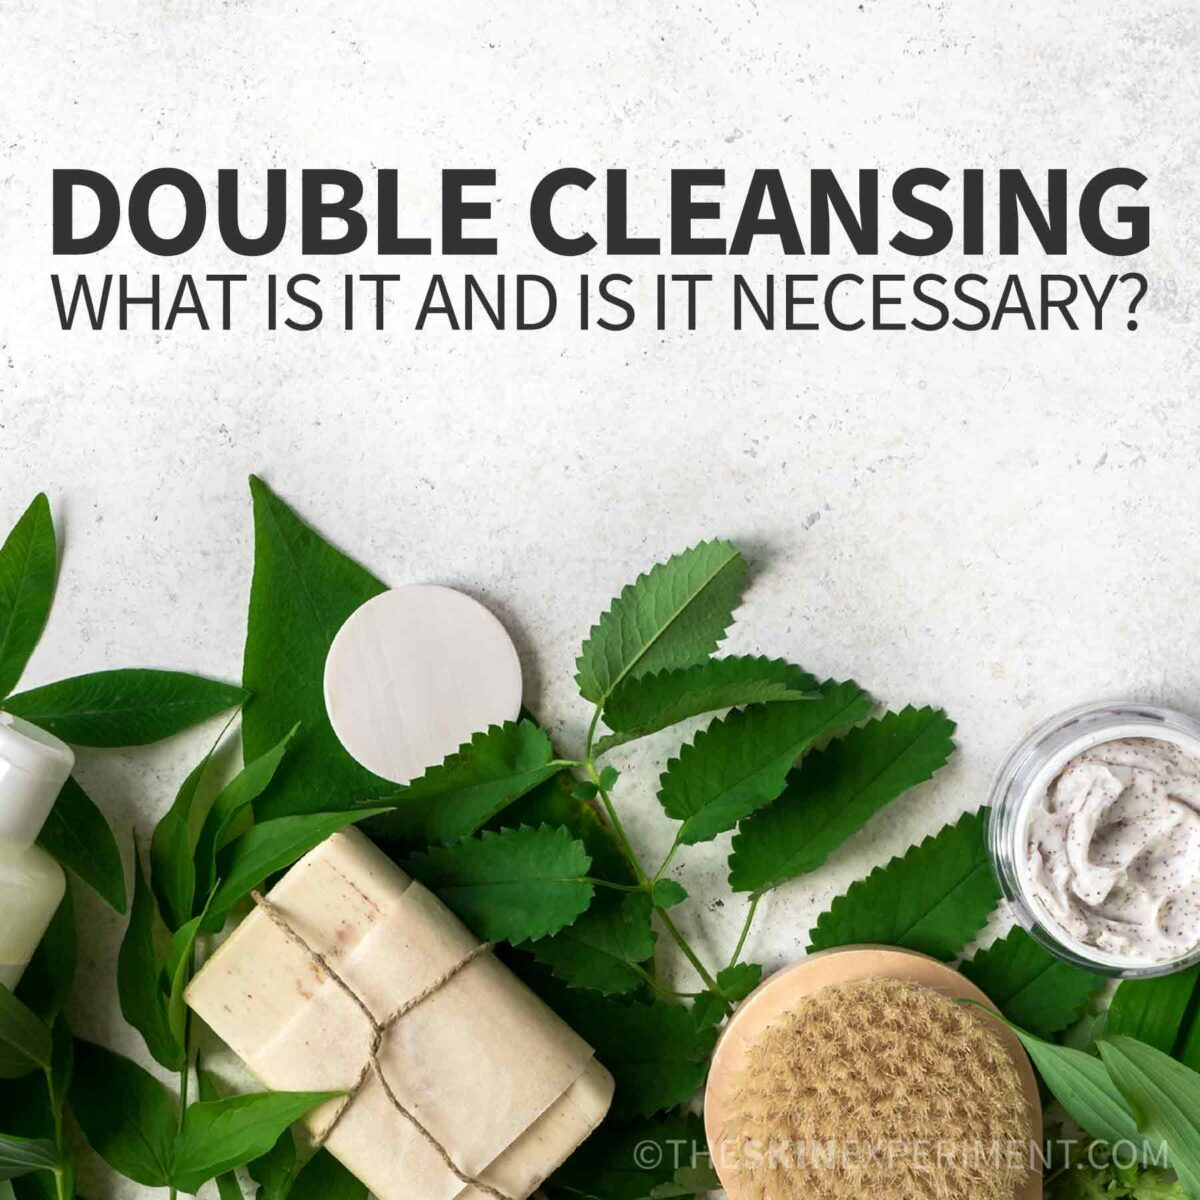 Is Double Cleansing Necessary?